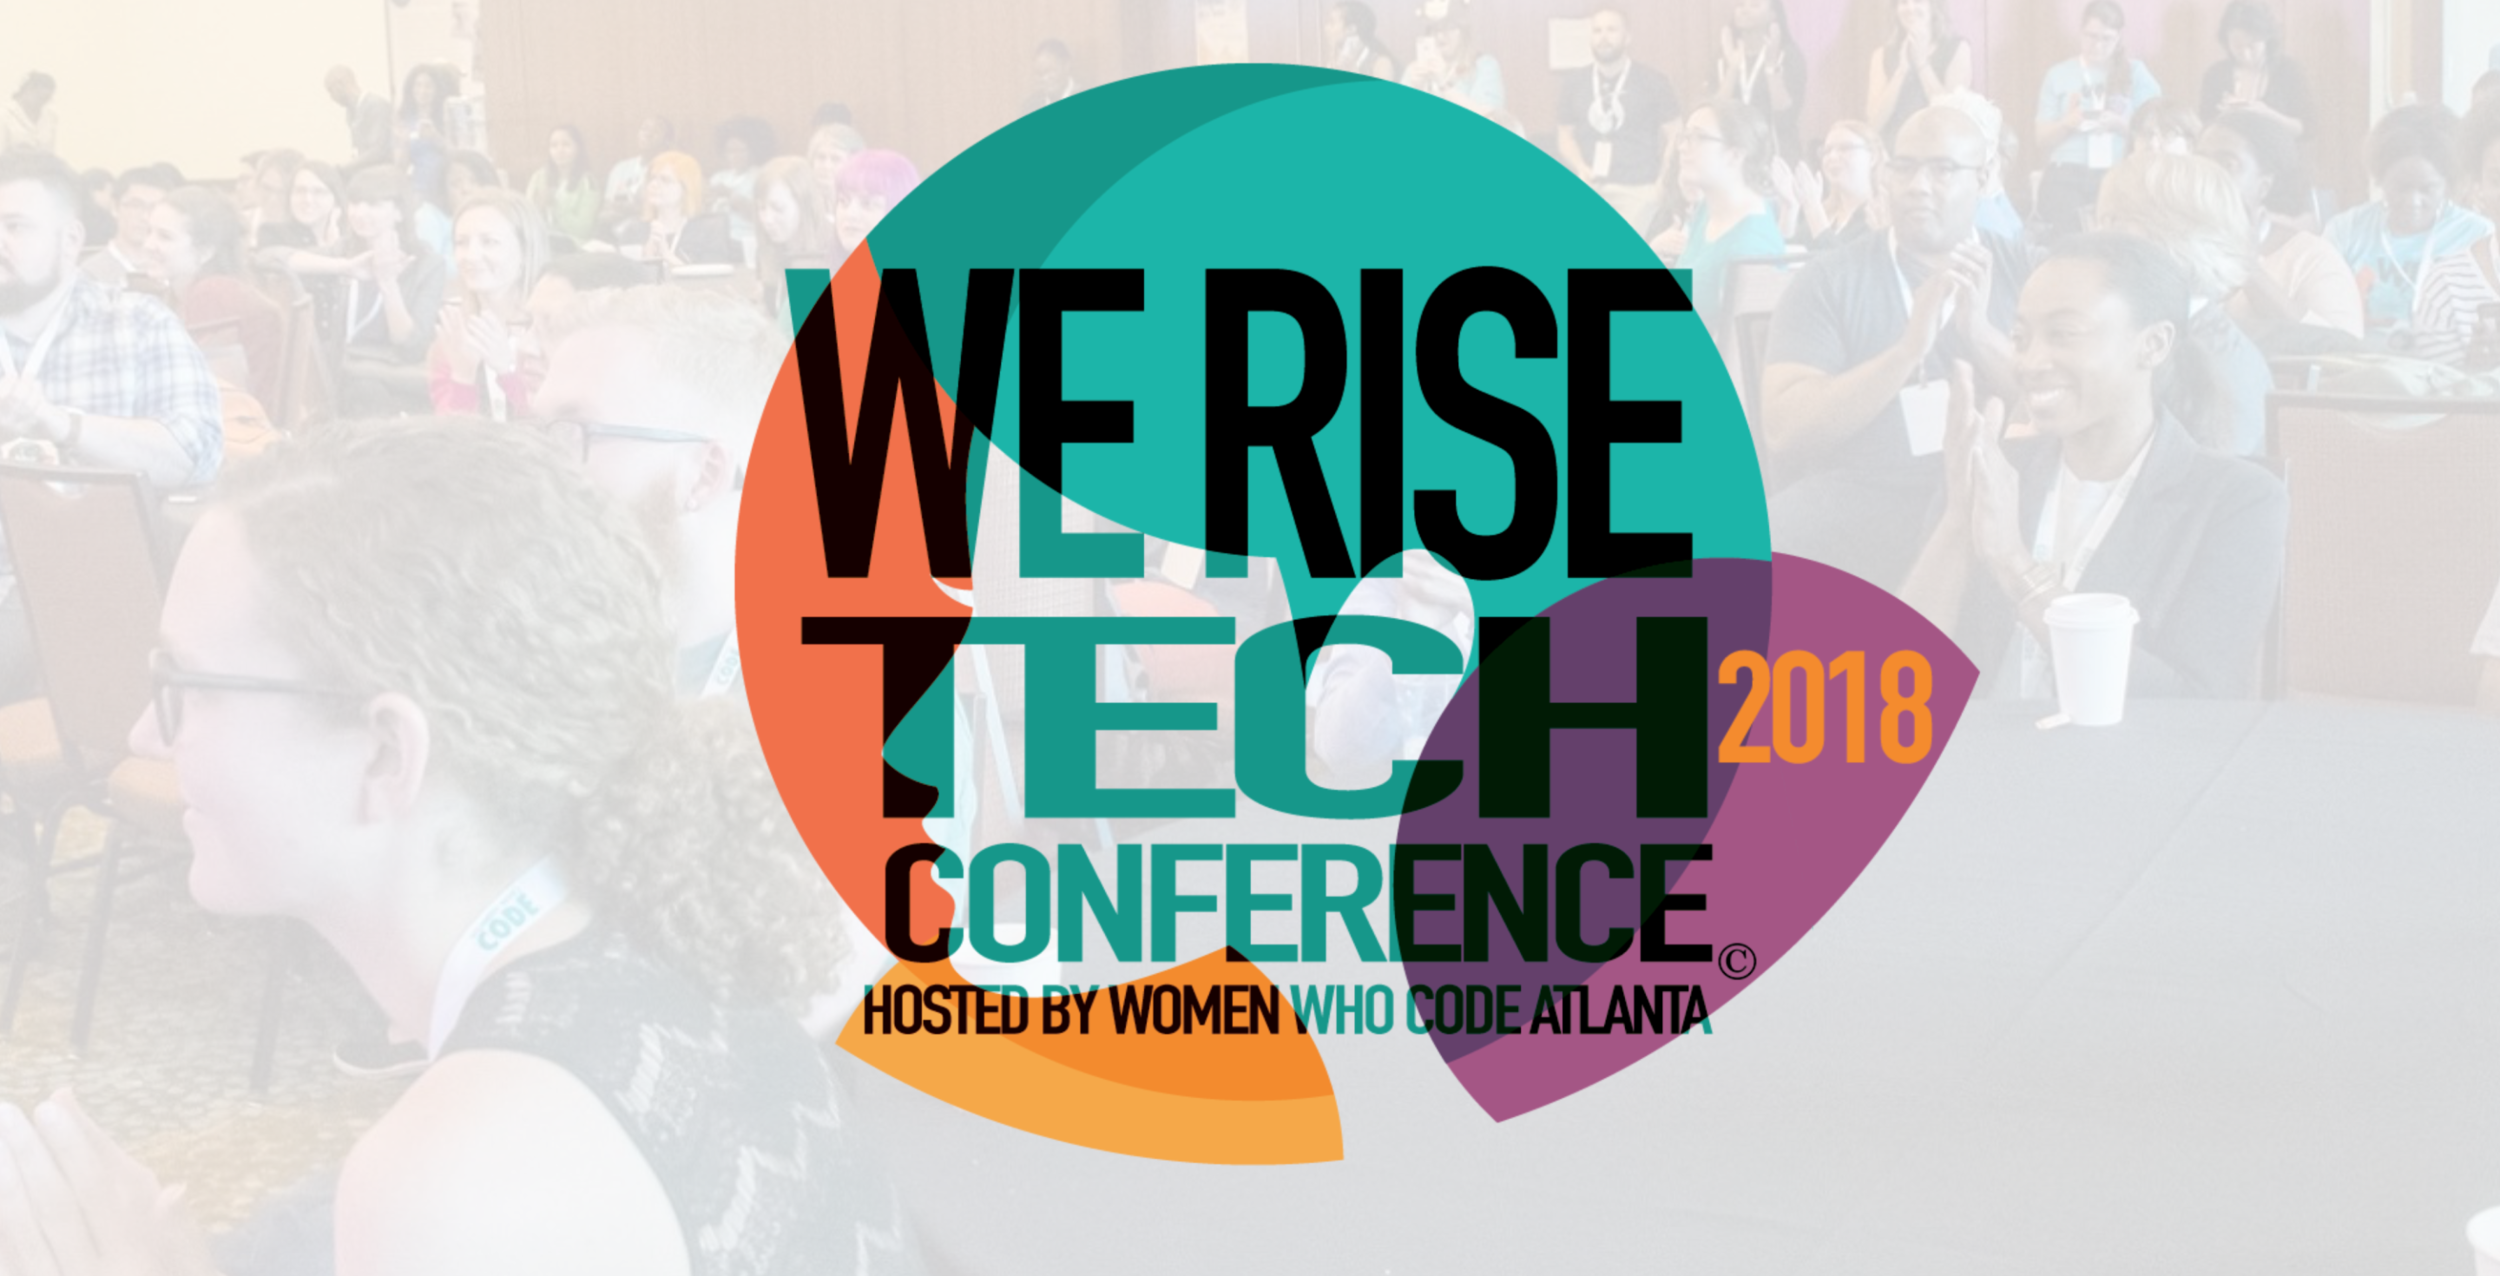 We got the opportunity to present this project at the 2018 We Rise Tech Conference in Atlanta, Ga. and look forward to presenting it at more conferences in the future.